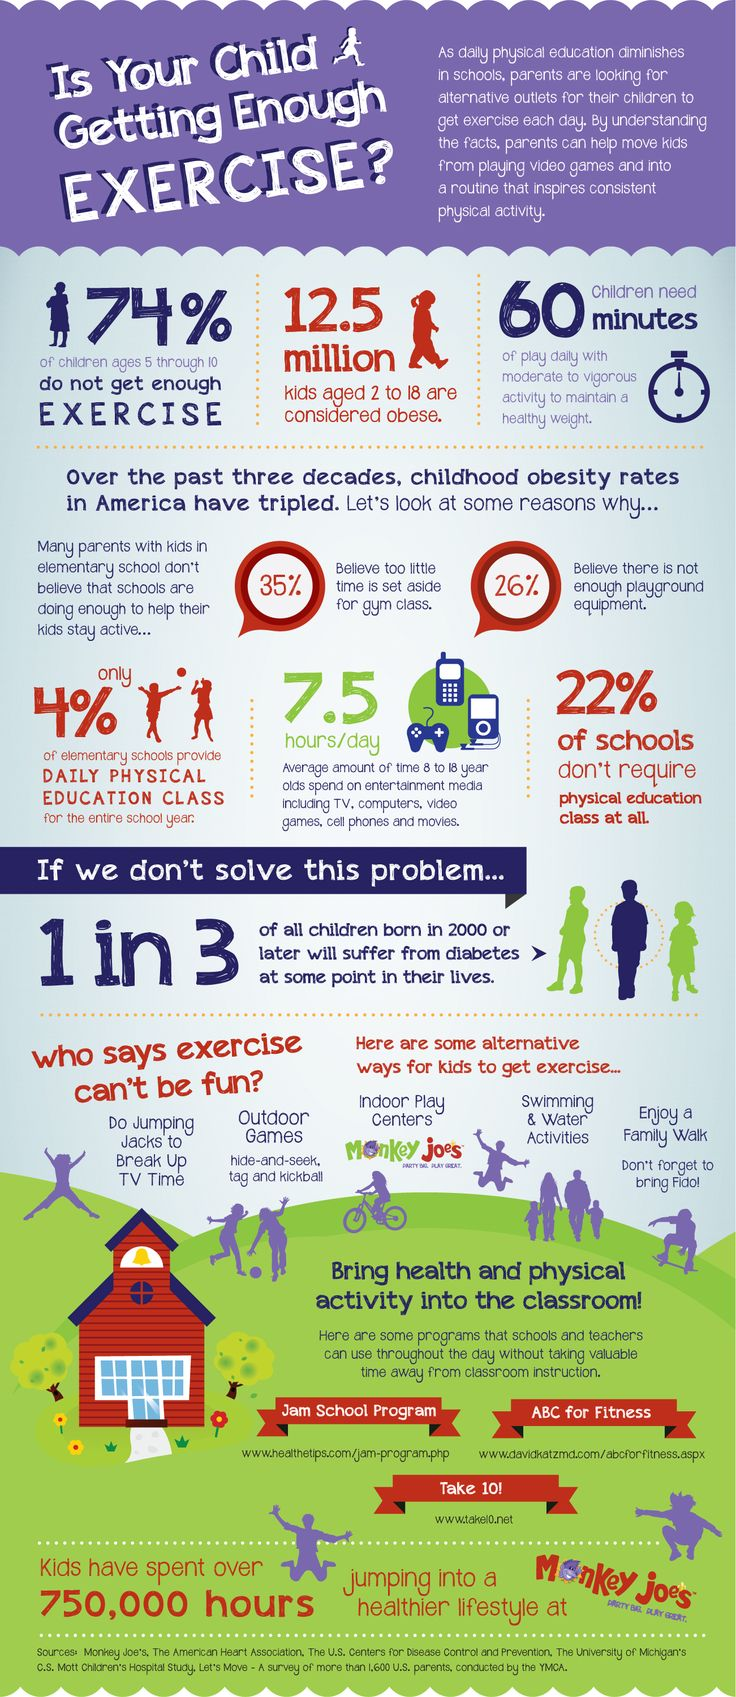 Is Your Child Getting Enough Exercise Info graphic